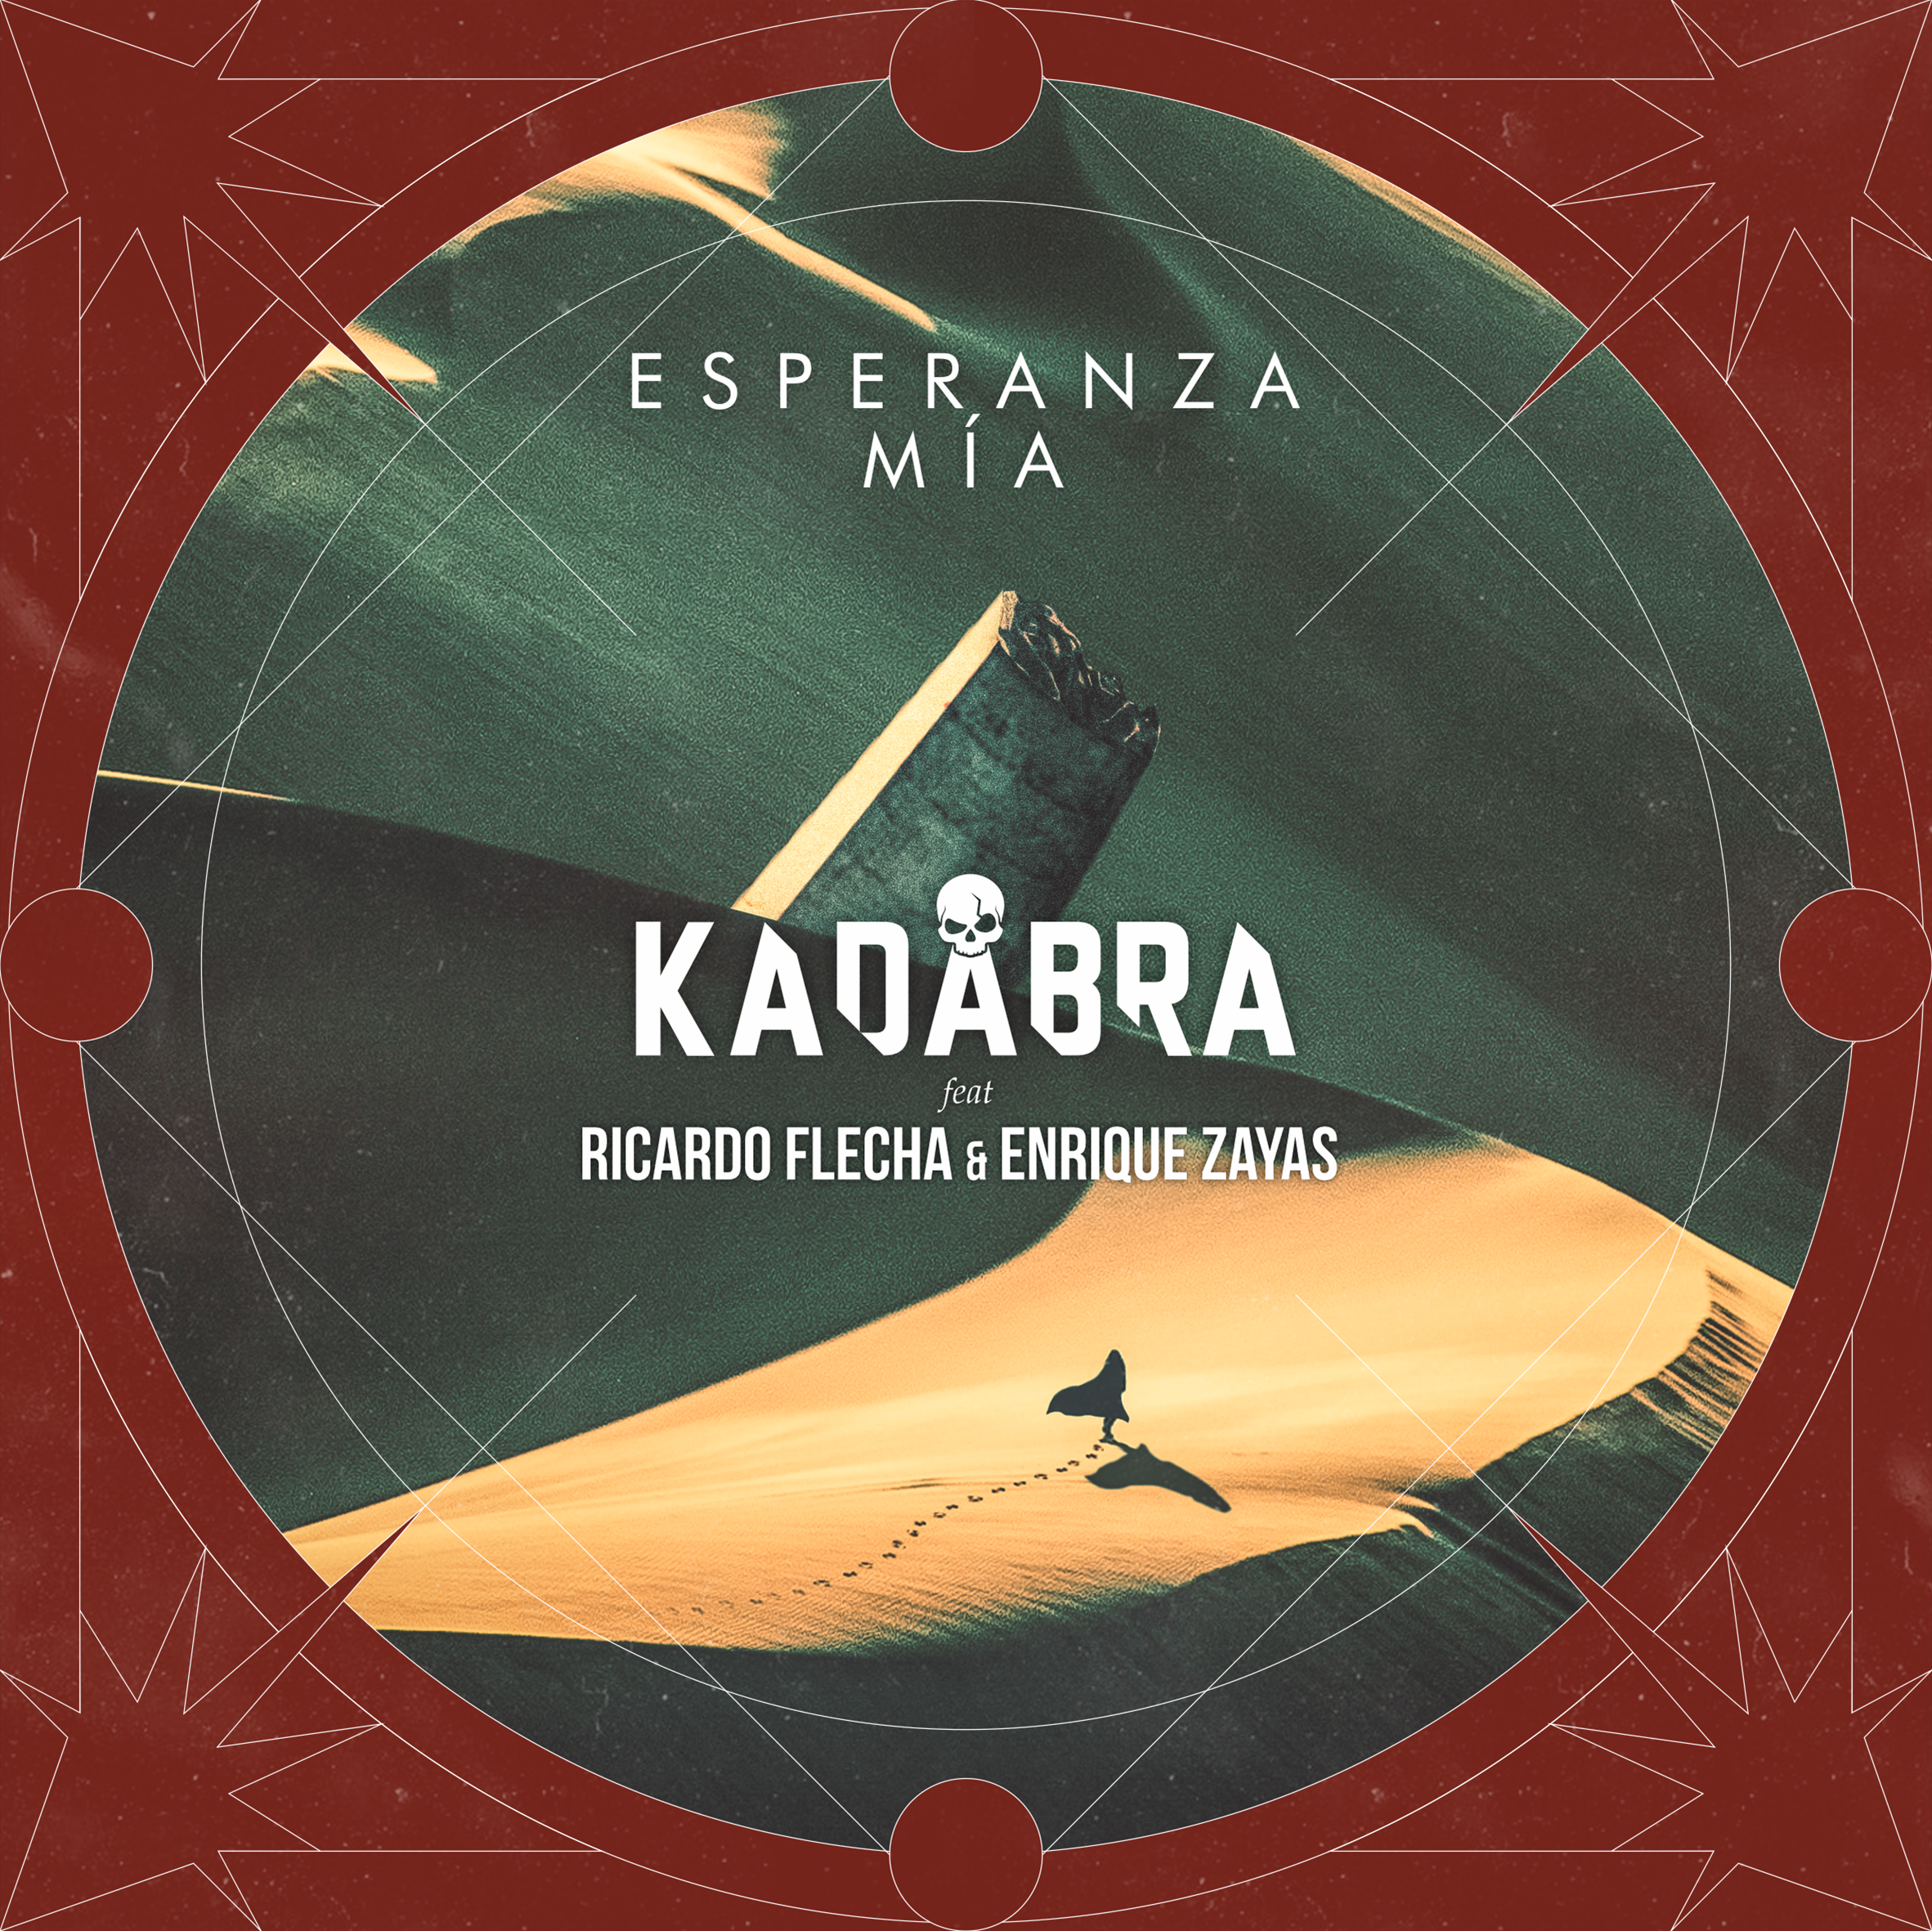 Kadabra - Esperanza Mia (Single 2020)